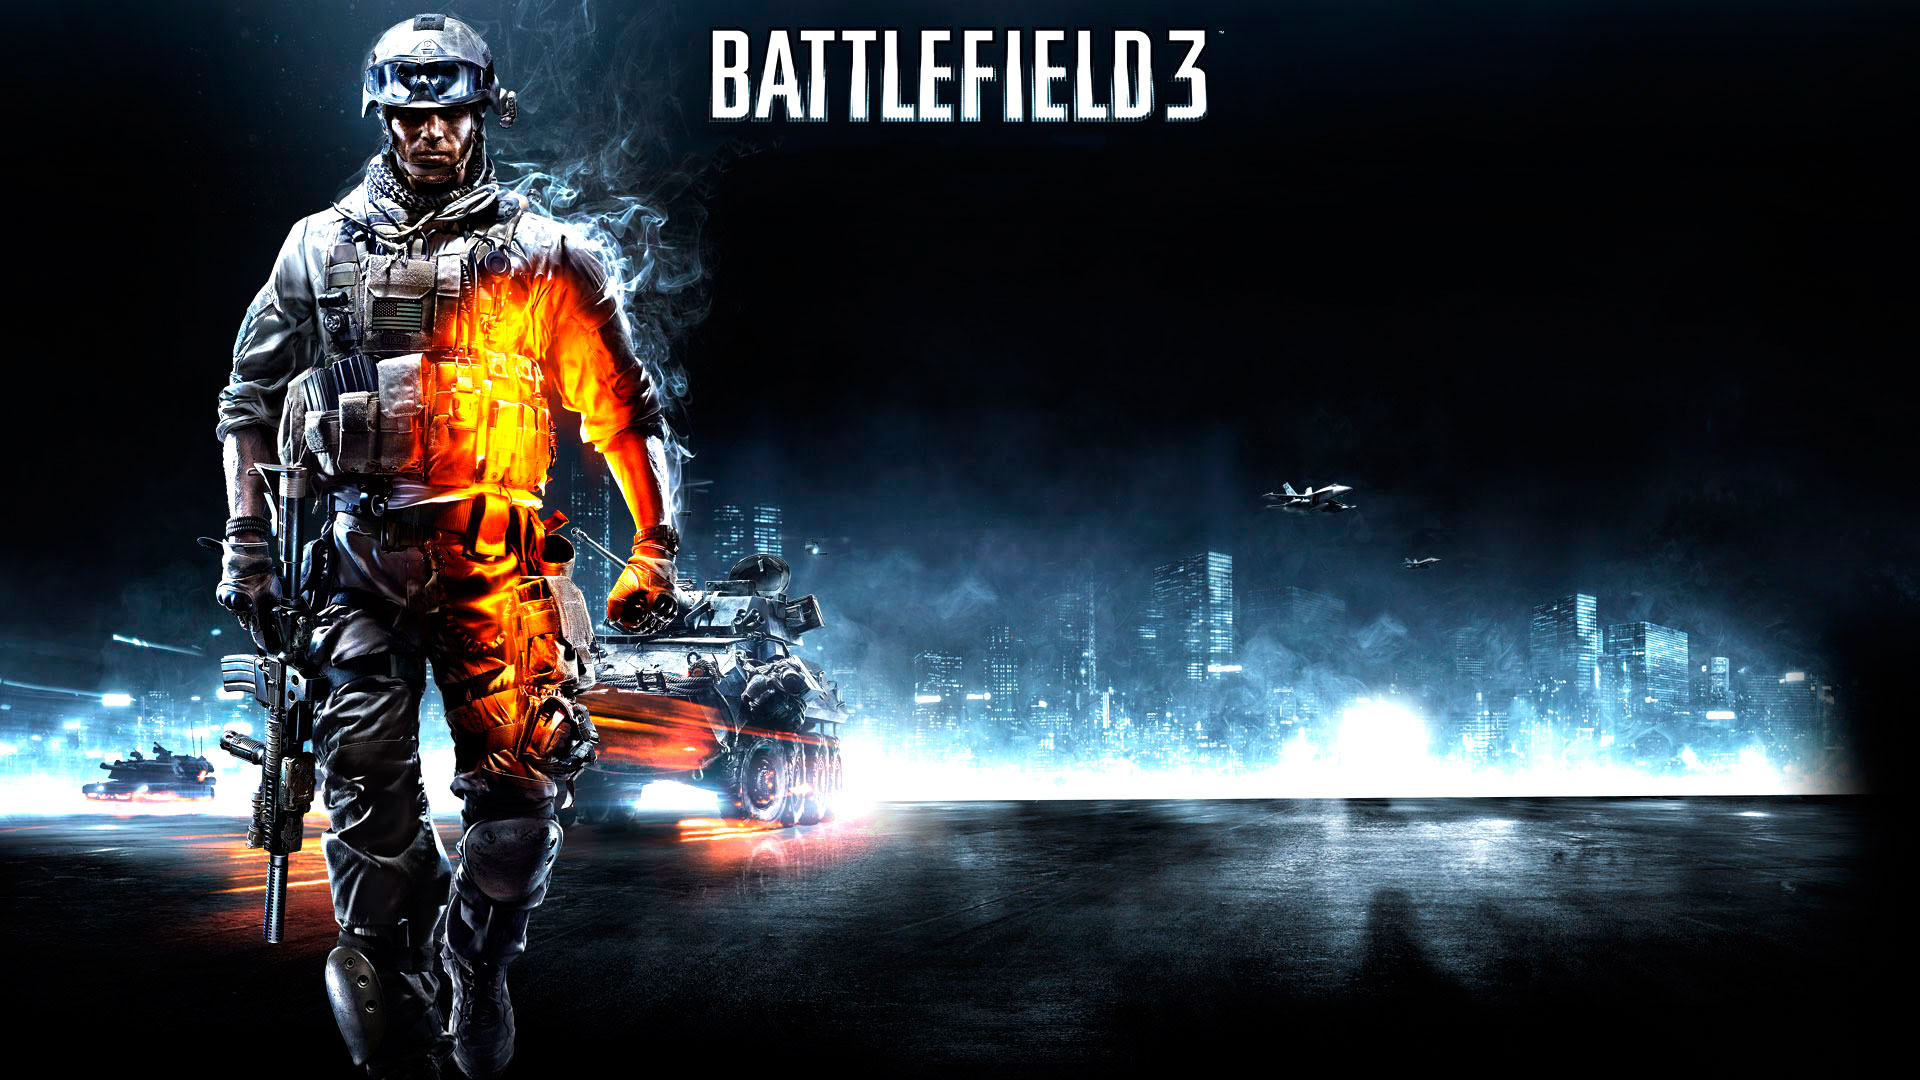 Free Live Wallpaper For Ps3